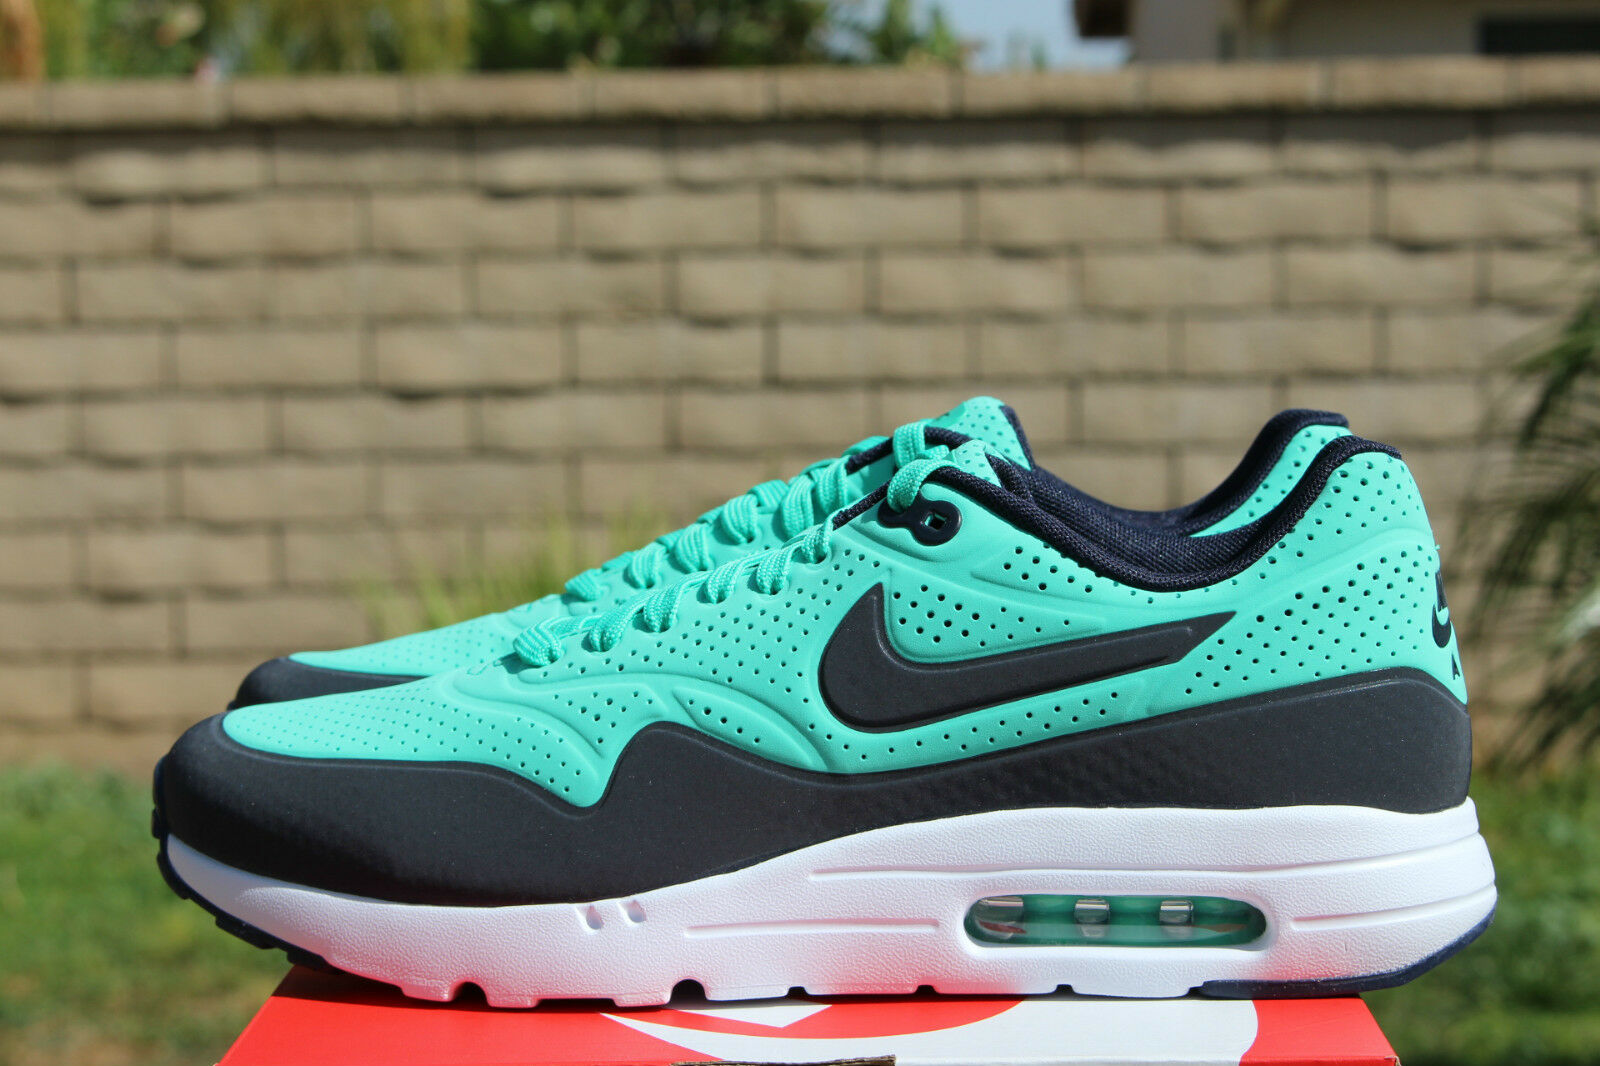 new products 066da 82e13 durable modeling NIKE AIR MAX 1 ULTRA MOIRE SZ 10.5 MENTHOL GREEN OBSIDIAN  BLUE WHITE 705297